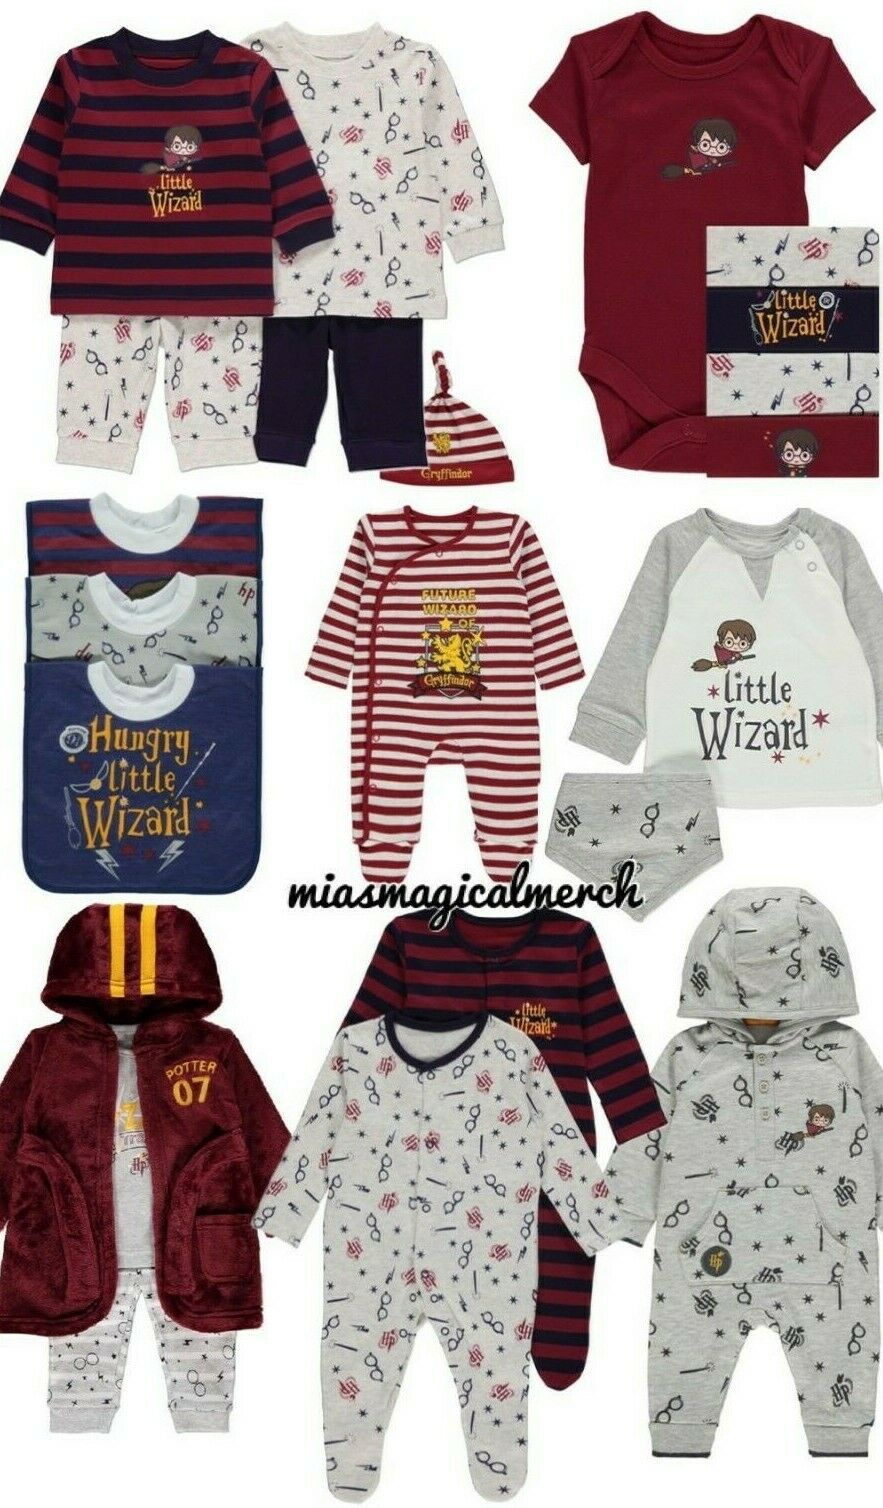 Brand New Baby Boy's Harry Potter Little Wizard Clothing 8 T